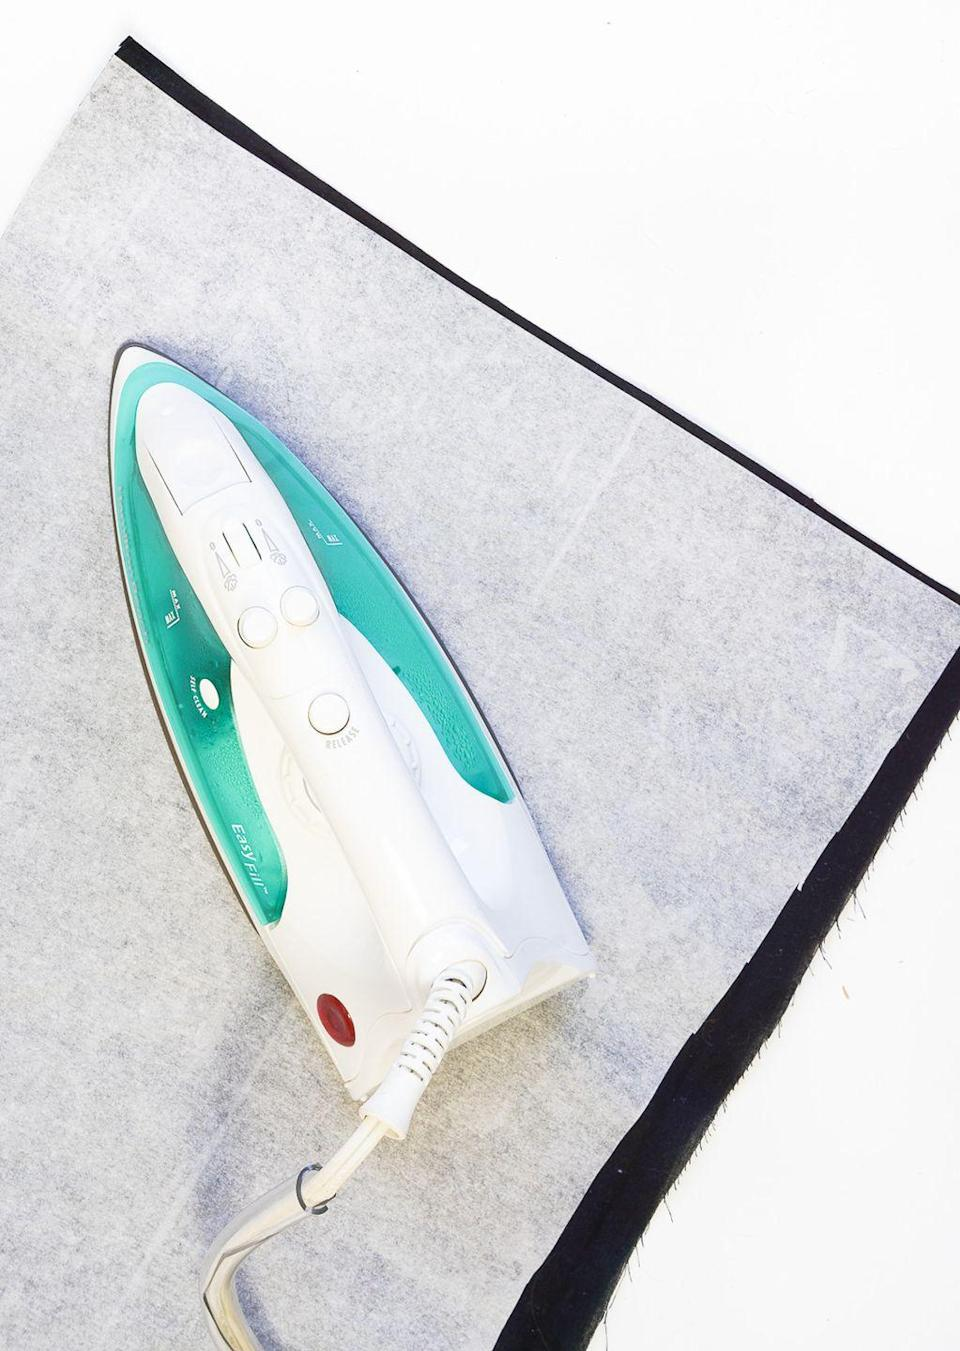 <p>To give your ironing board a little style, upholster it an eye-catching fabric. This is a great way to inject personal style into your sewing studio without bringing in any extra decor that'll take up useable space. </p>